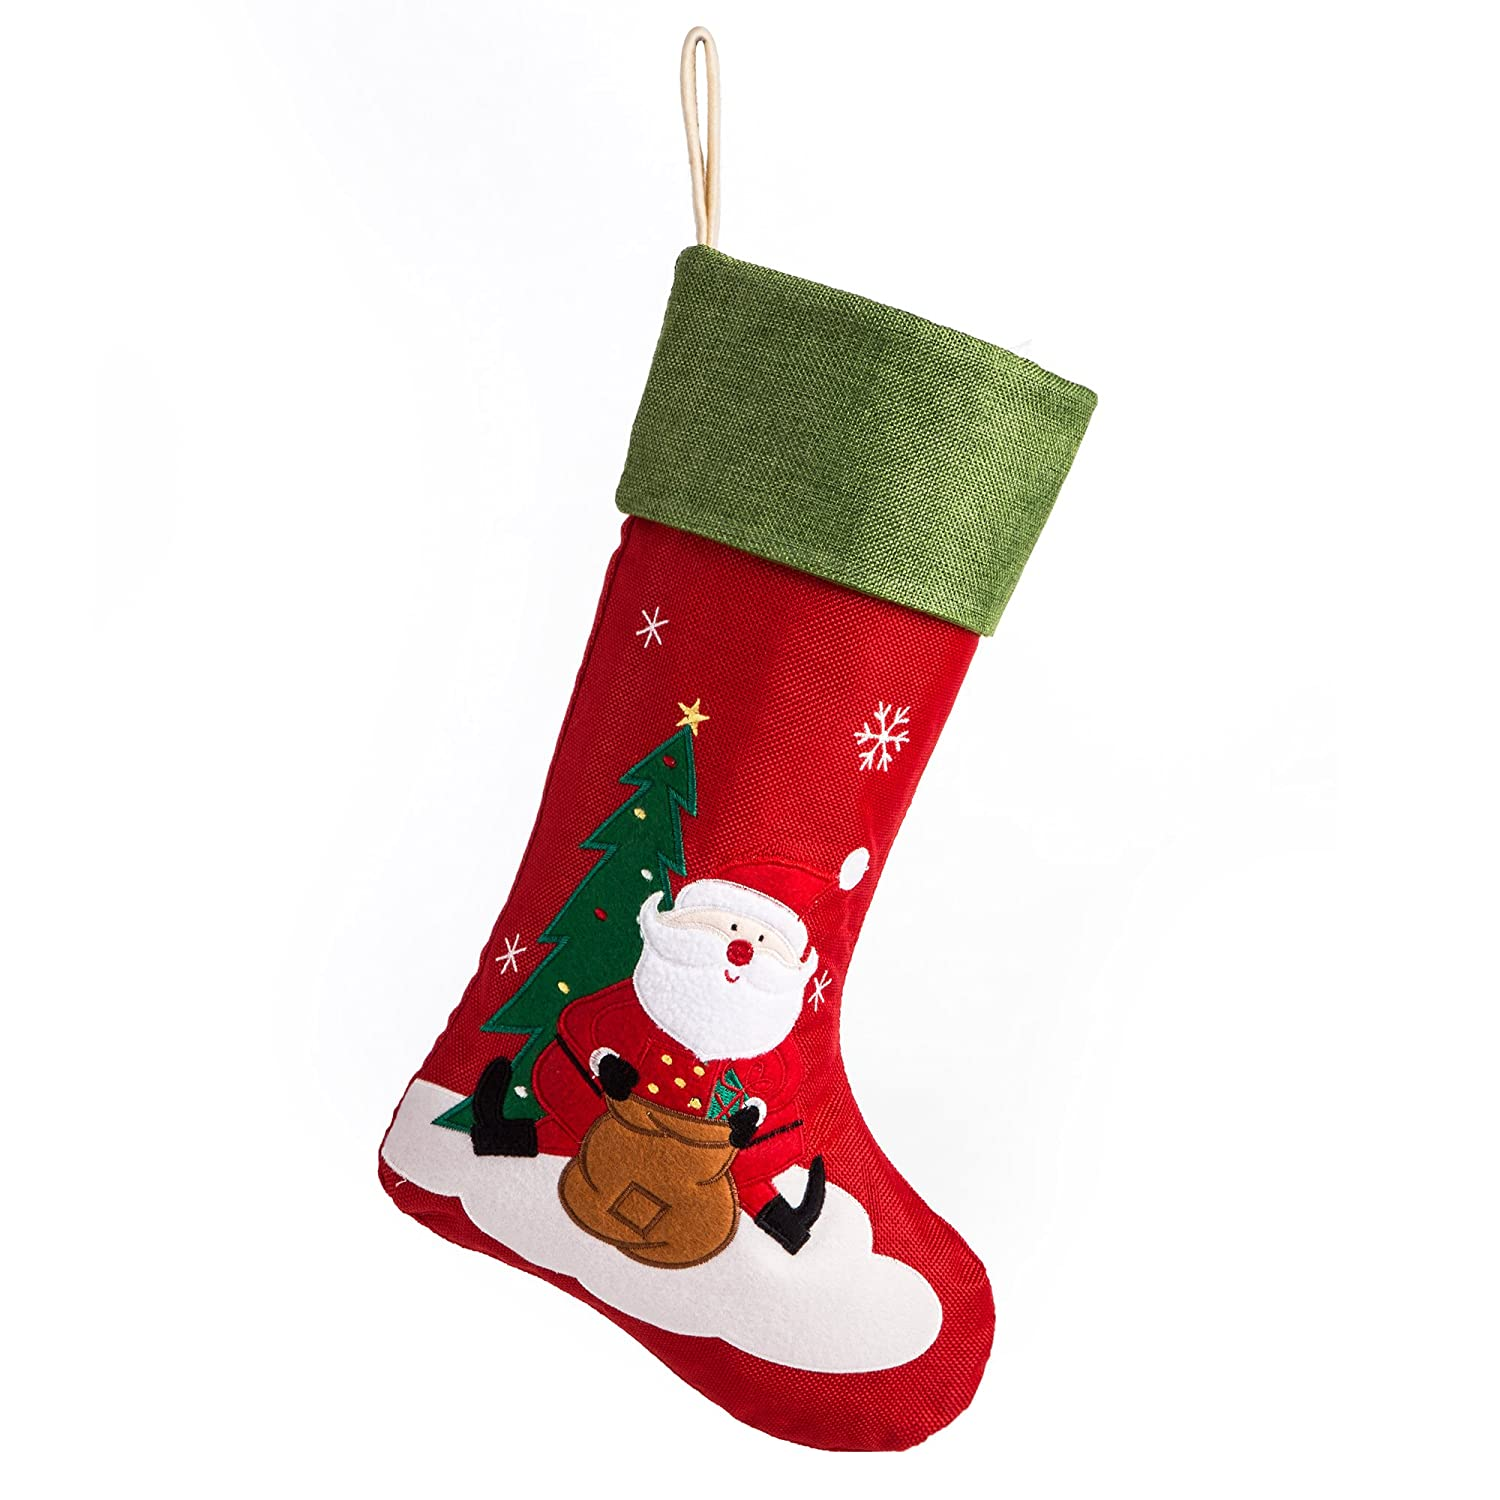 Burlap Christmas Stockings.Details About 18 Burlap Christmas Stocking Large Craft Socks Traditional Santa Stockings